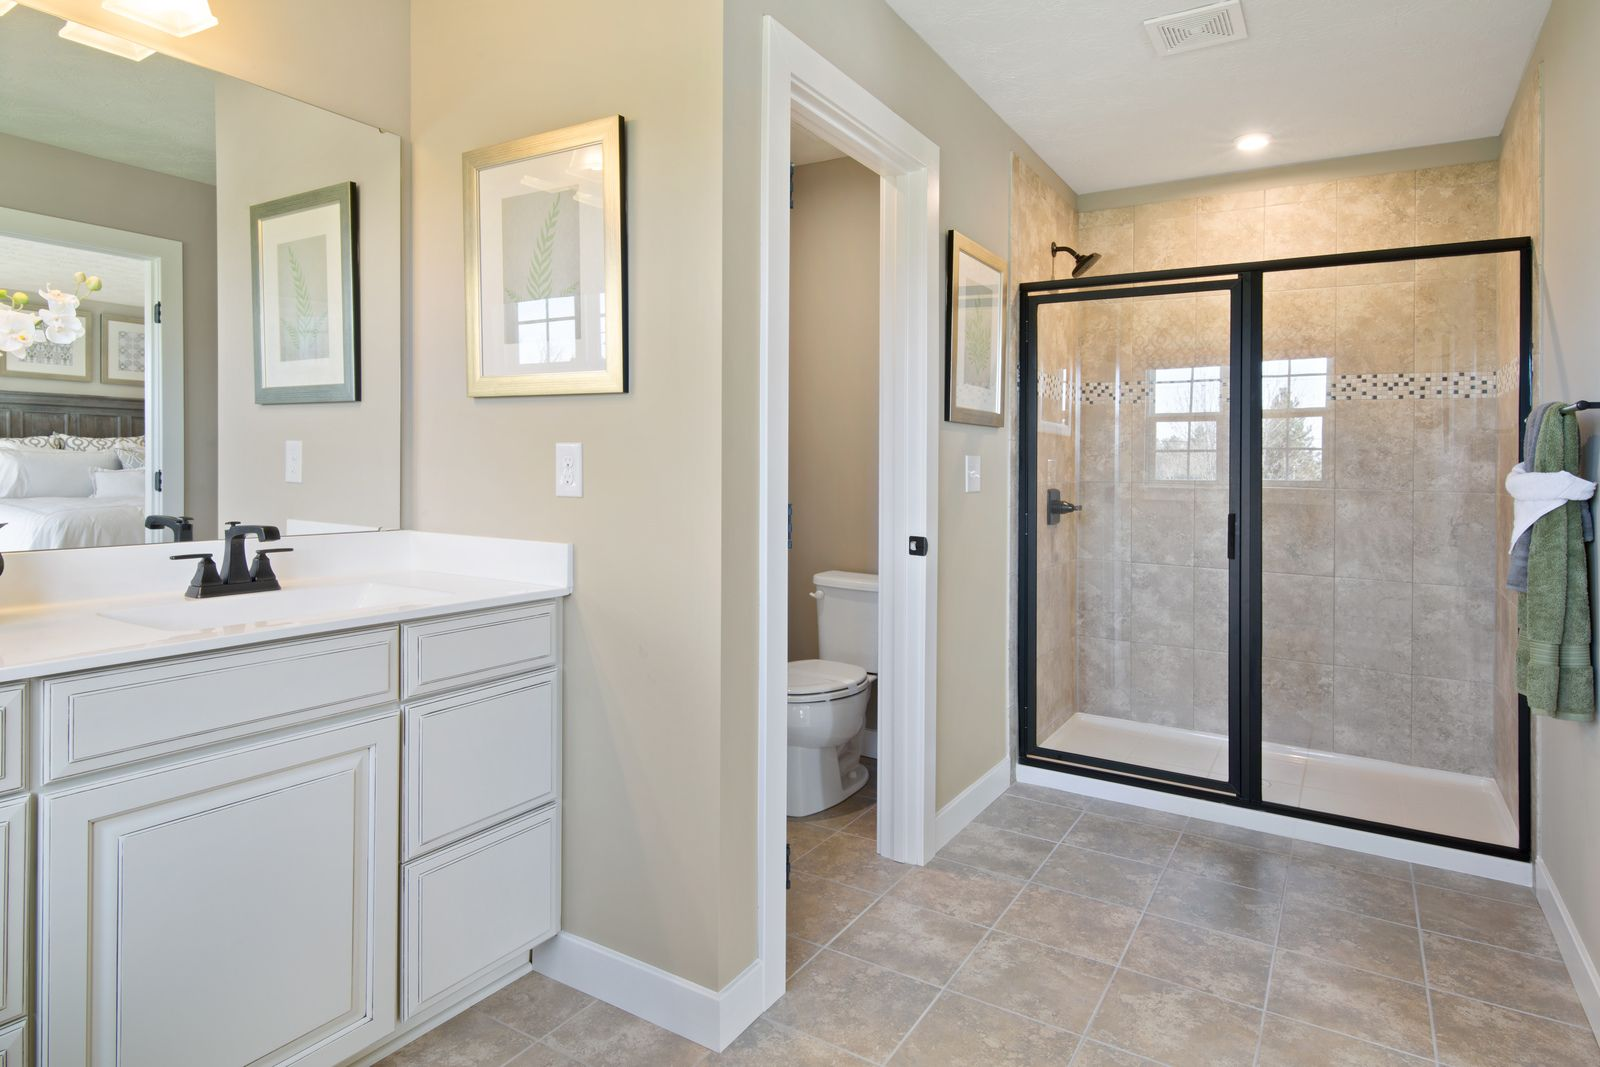 Bathroom featured in the Columbia By Ryan Homes in Washington, VA